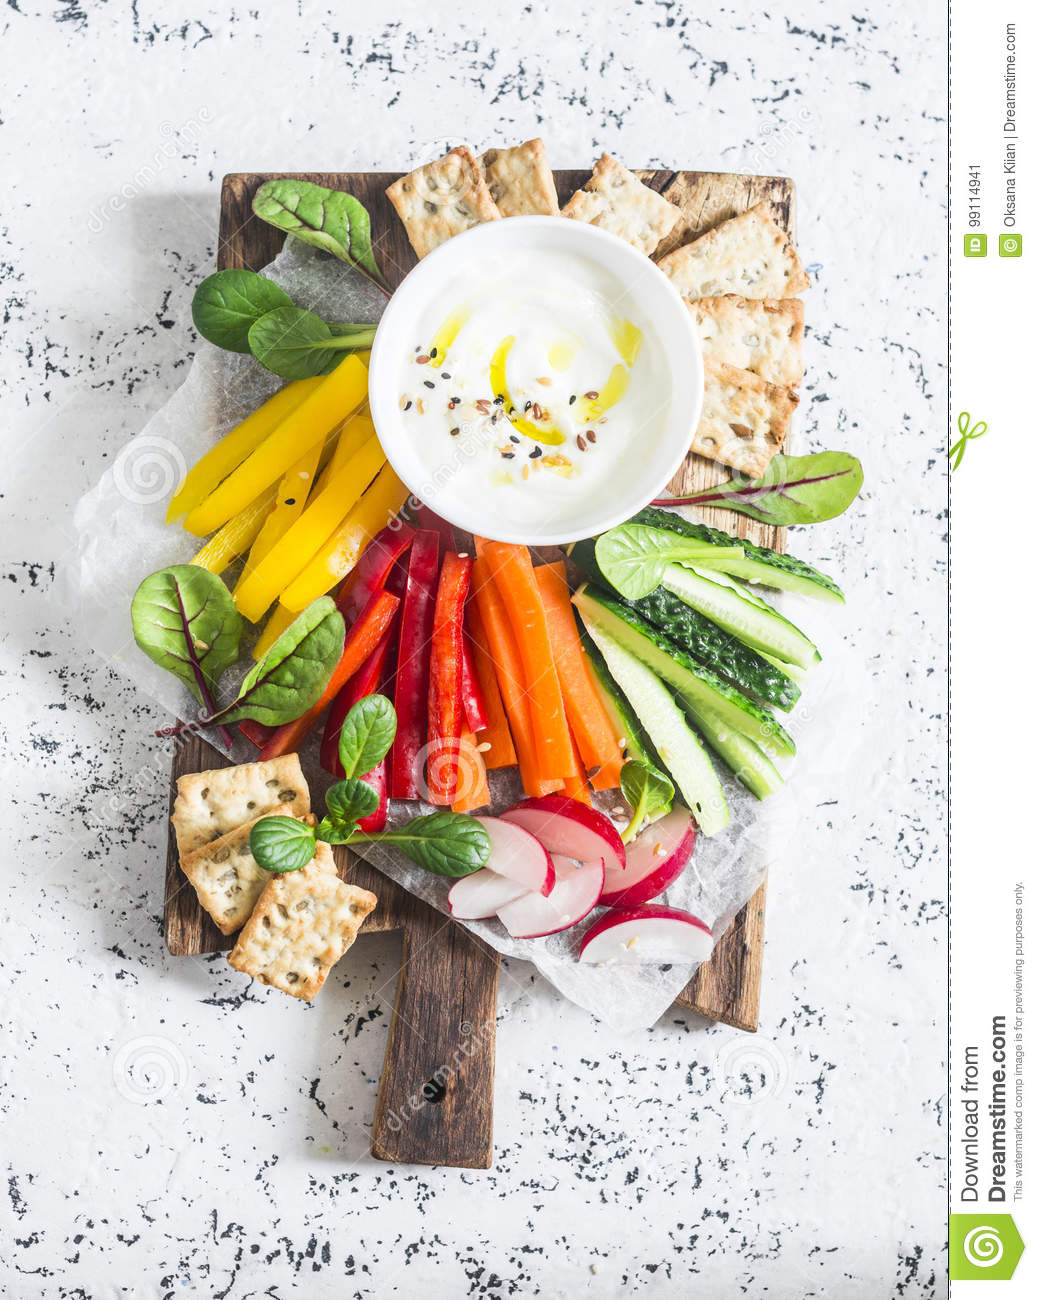 Raw vegetables and yogurt sauce on a wooden cutting board, on a light background, top view. Vegetarian healthy food